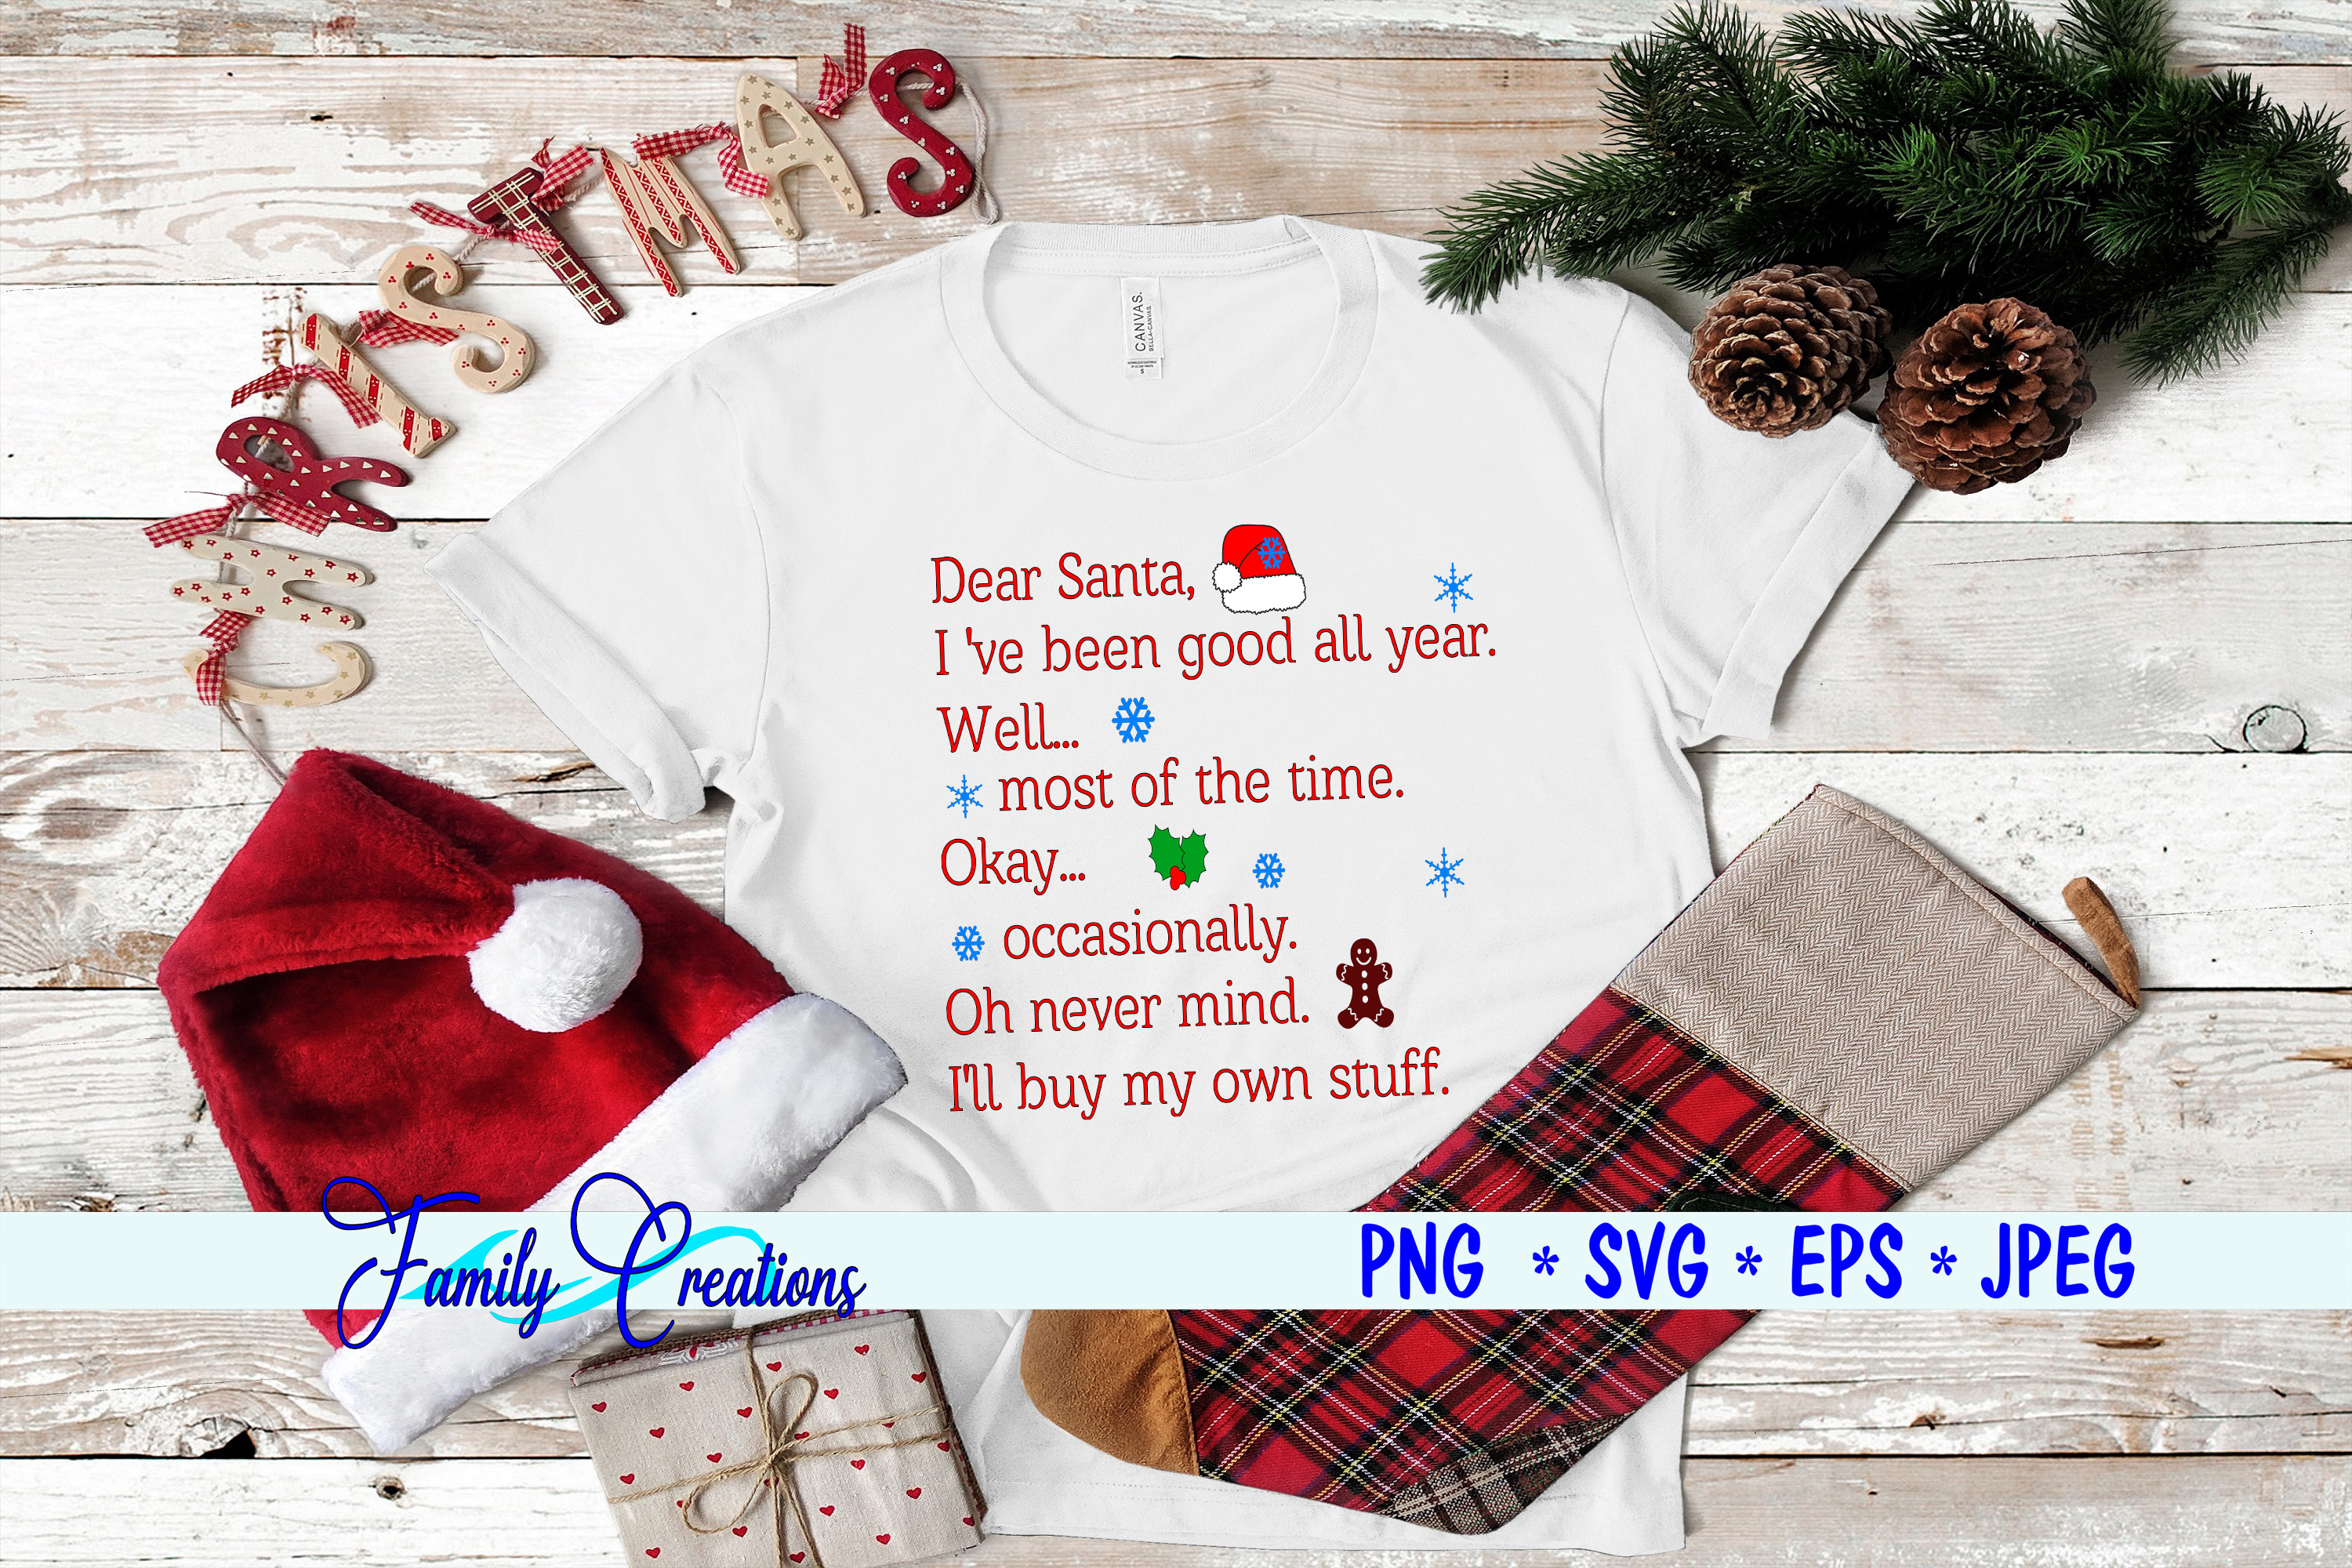 Download Free Dear Santa Graphic By Family Creations Creative Fabrica for Cricut Explore, Silhouette and other cutting machines.